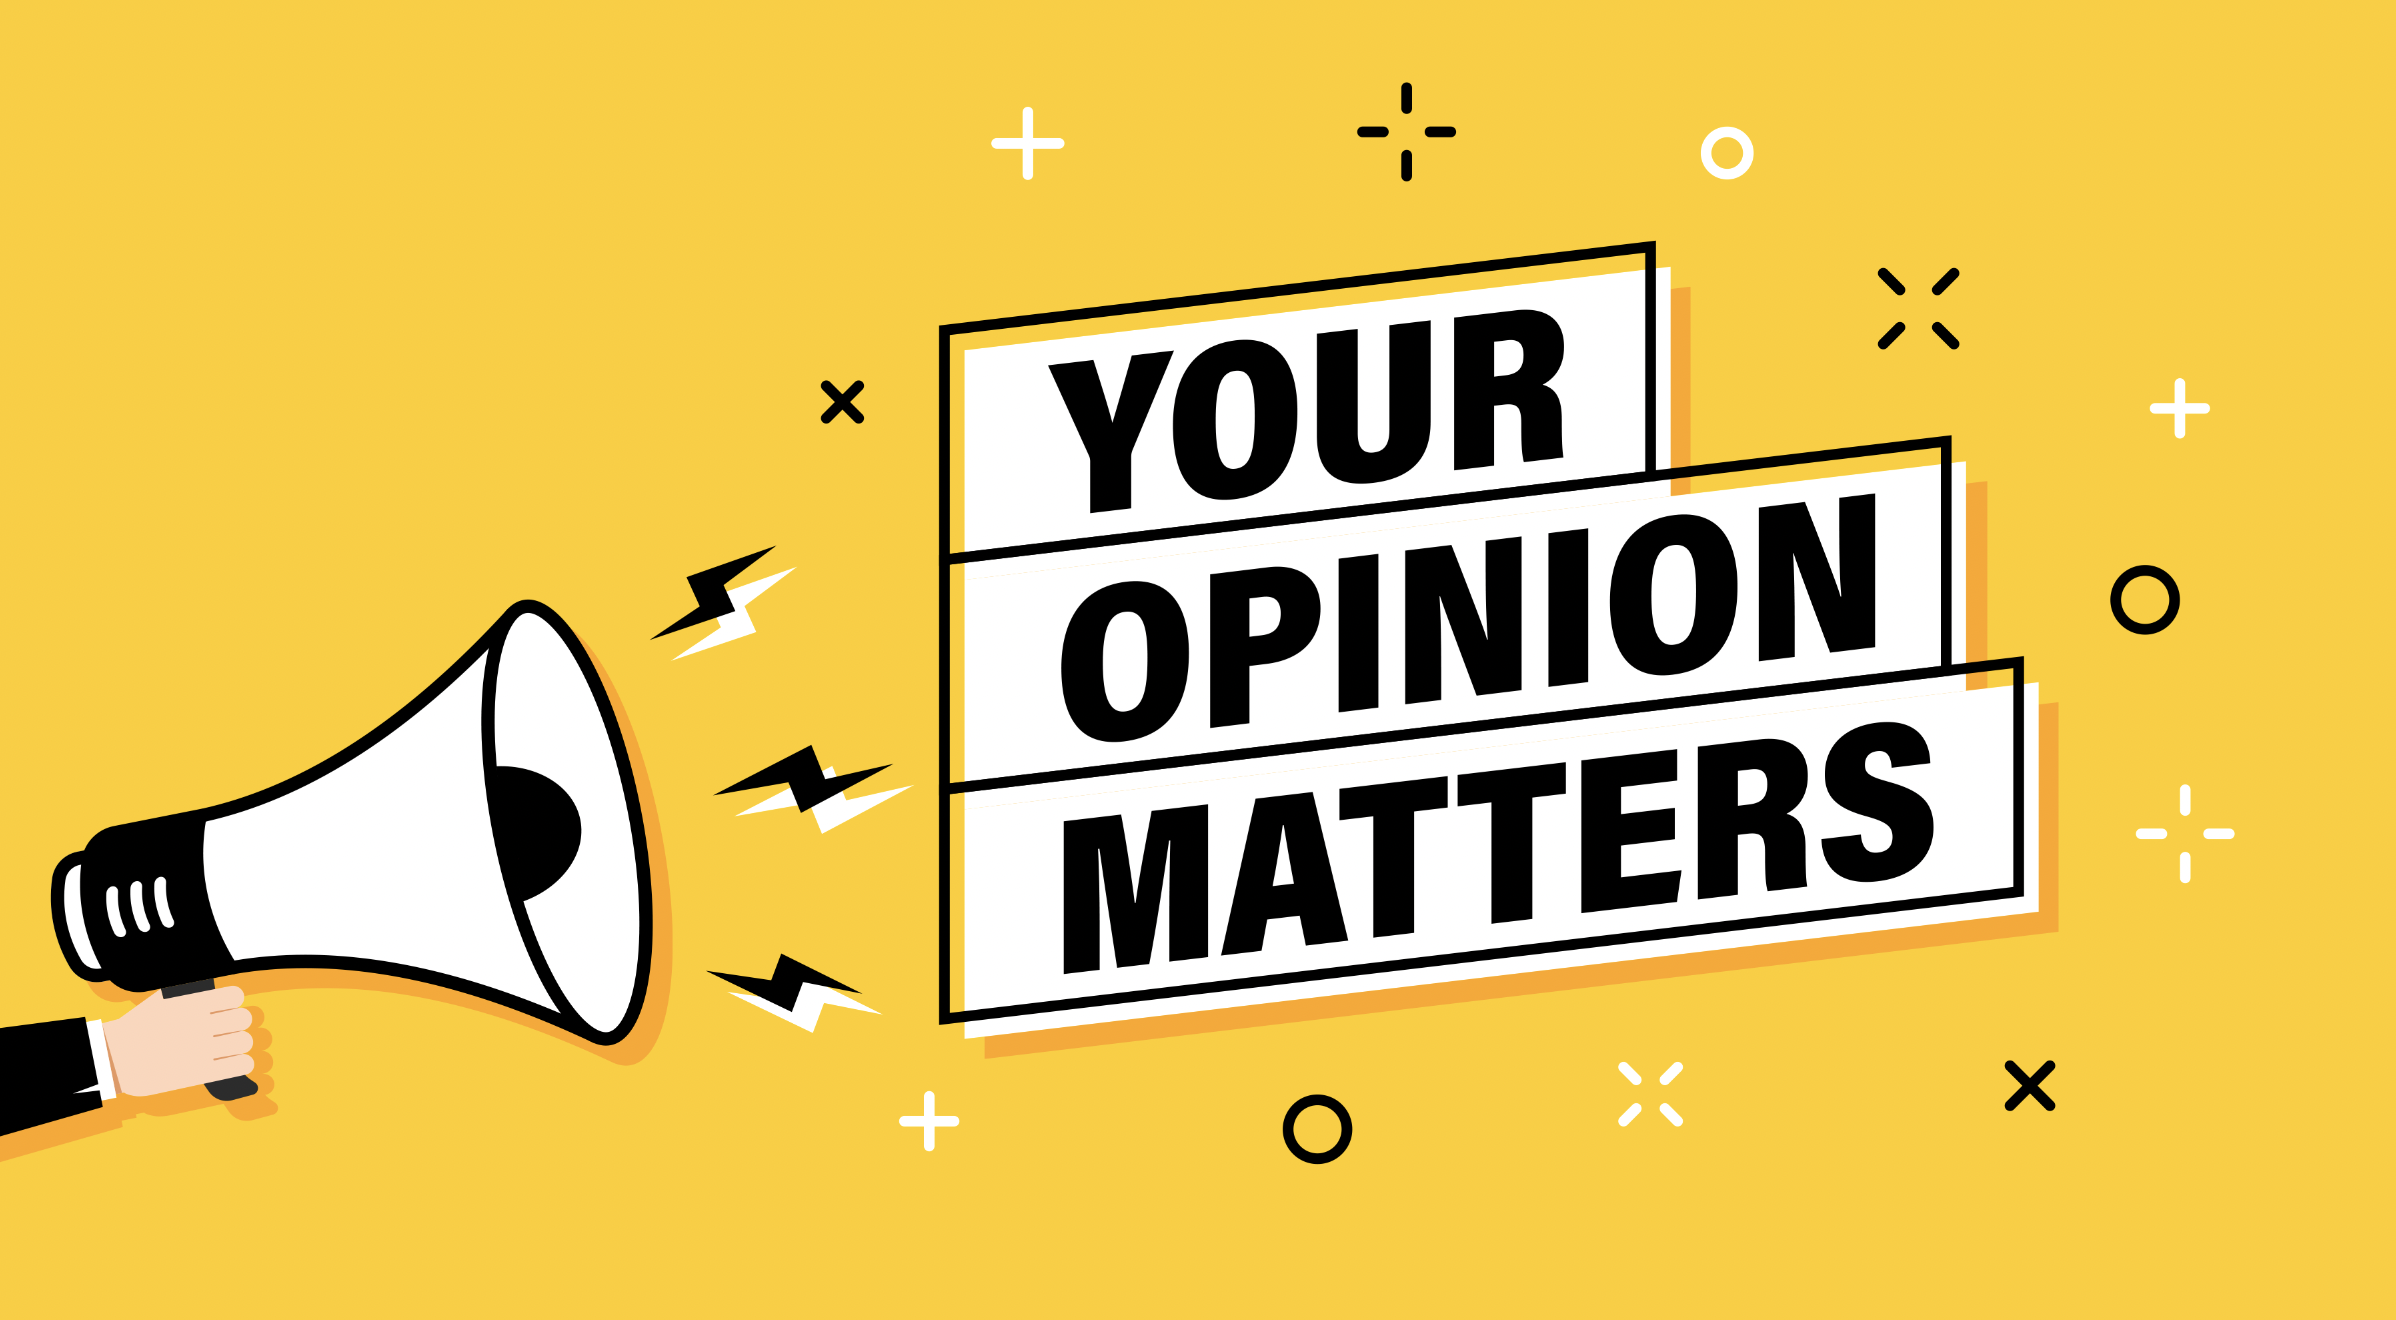 Your-opinion-matters